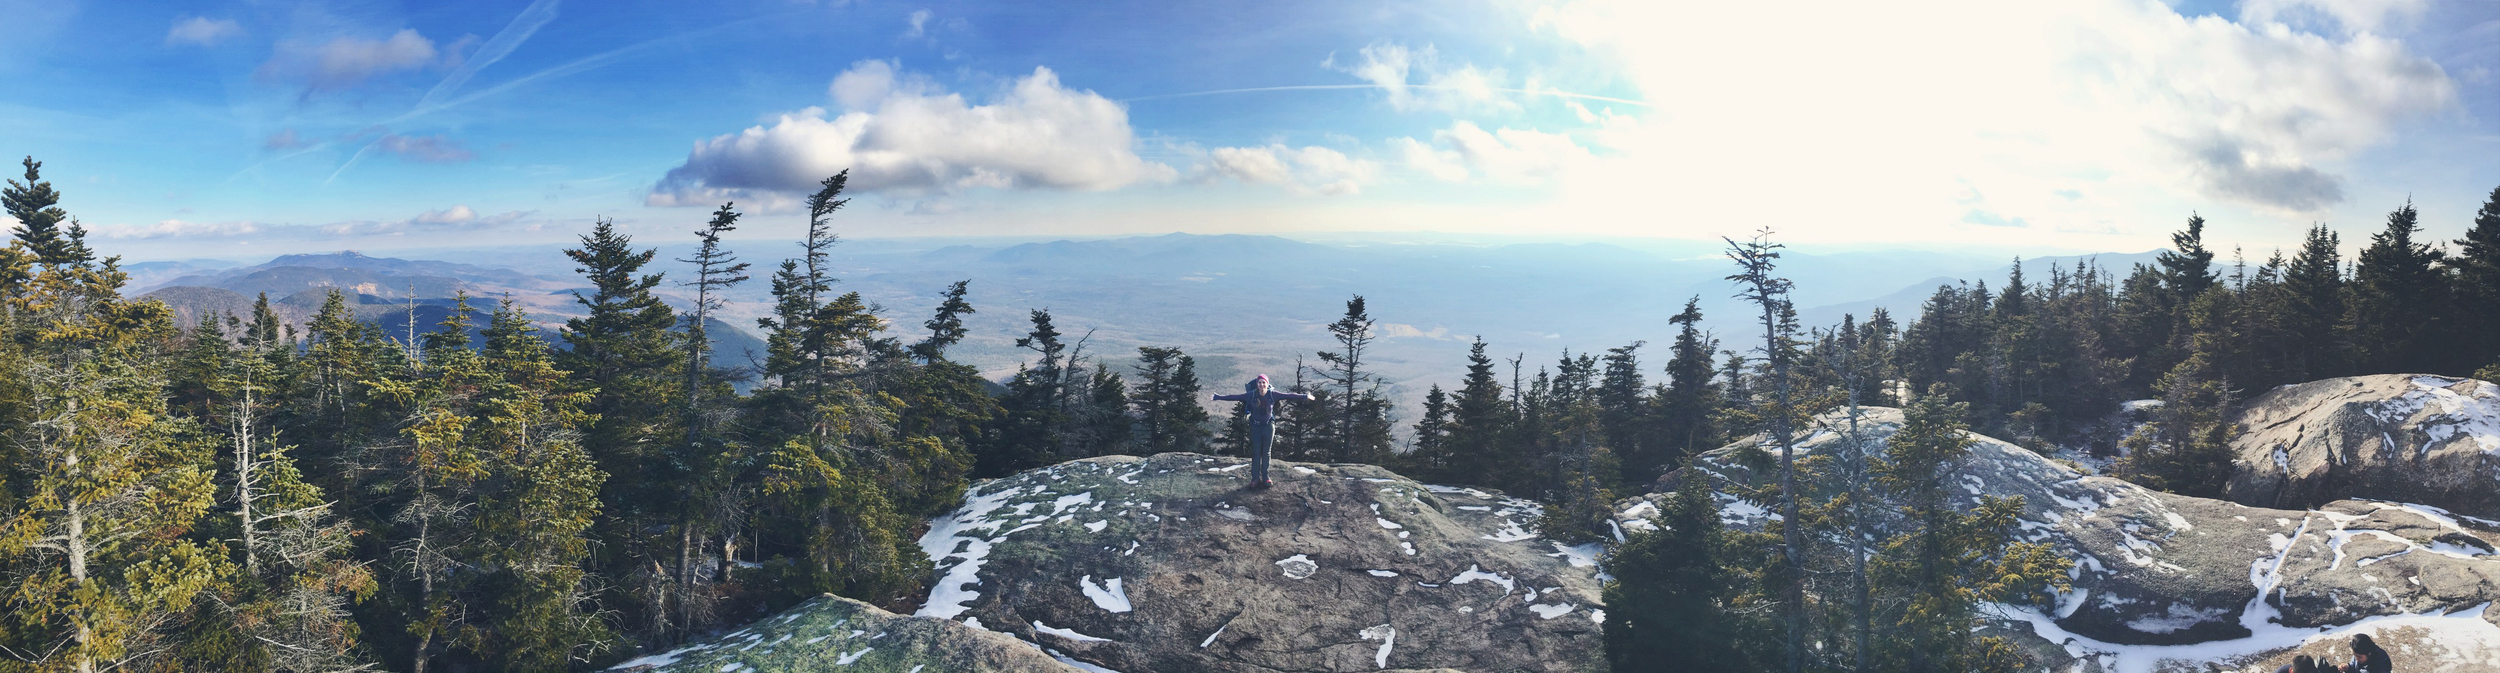 Wide open spaces on Mt. Whiteface